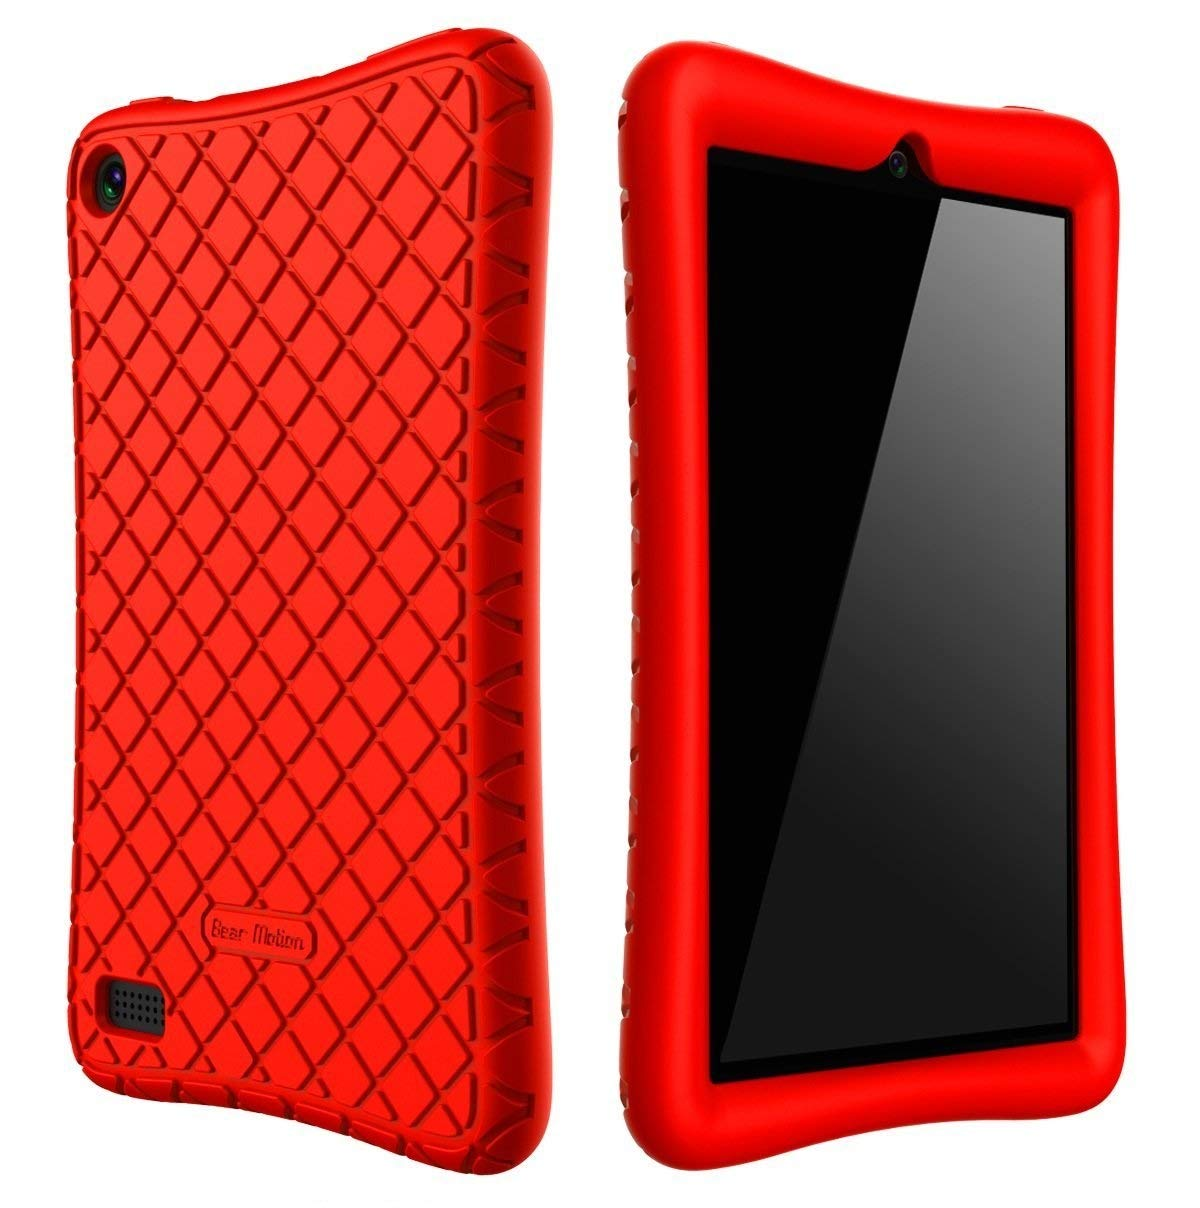 Bear Motion Case for All-New Fire 7 Tablet with Alexa - Anti Slip Shockproof Light Weight Kids Friendly Protective Case for Amazon Kindle Fire 7 2017 (ONLY for 7th Generation 2017 Model) (Red) BMFIRE72017SLCRD